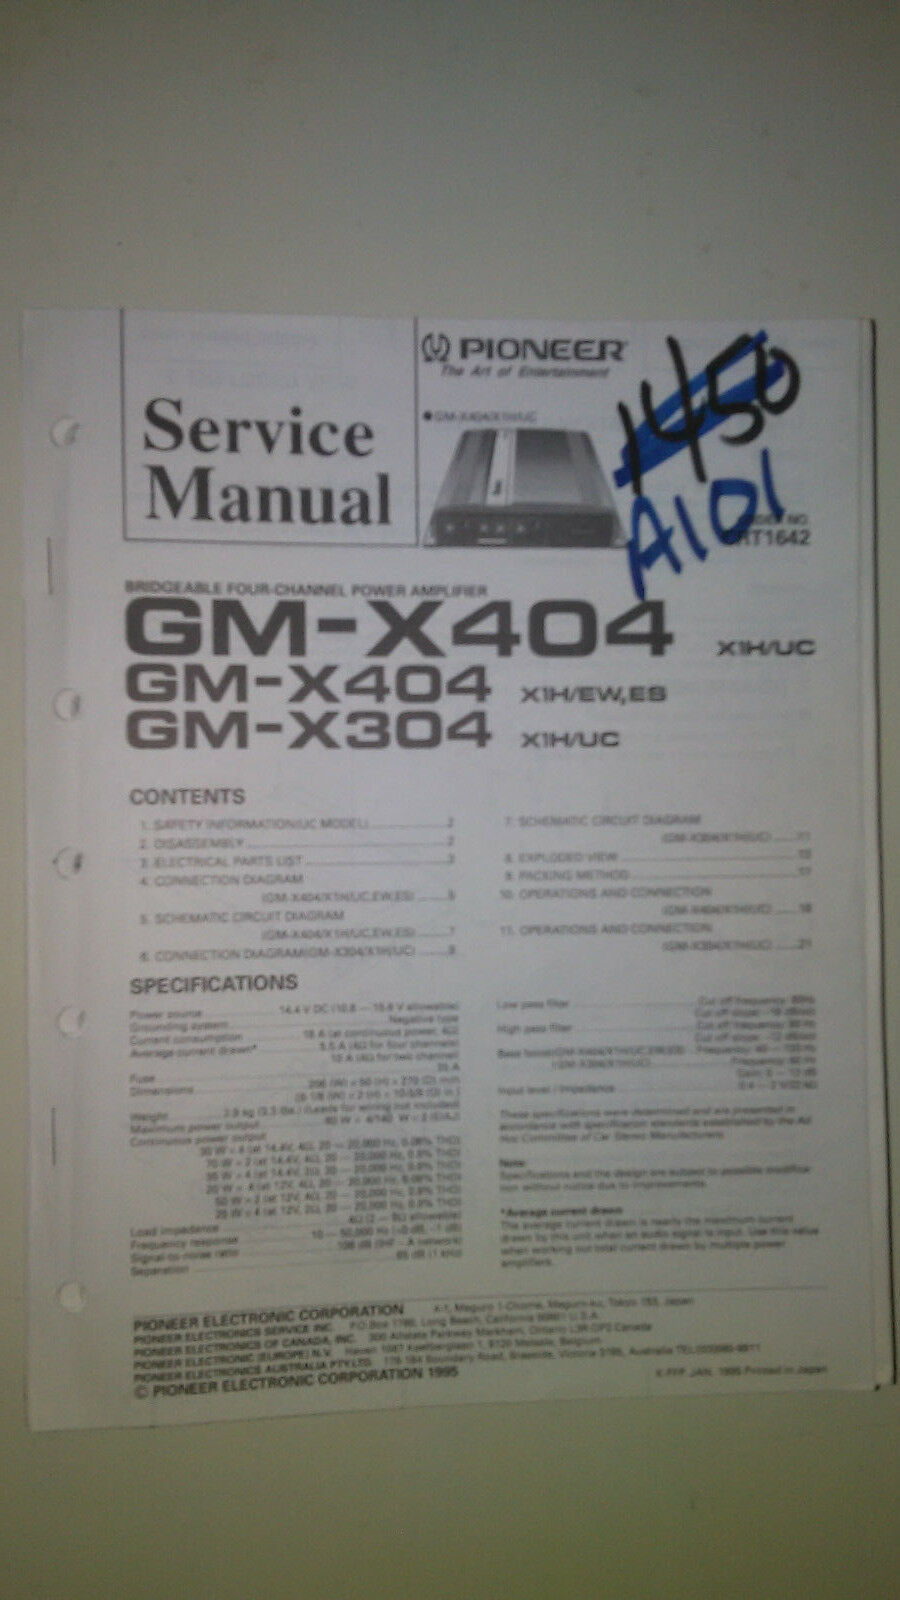 Pioneer gm-x404 x304 service manual original repair book stereo power amp 1  of 1FREE Shipping ...